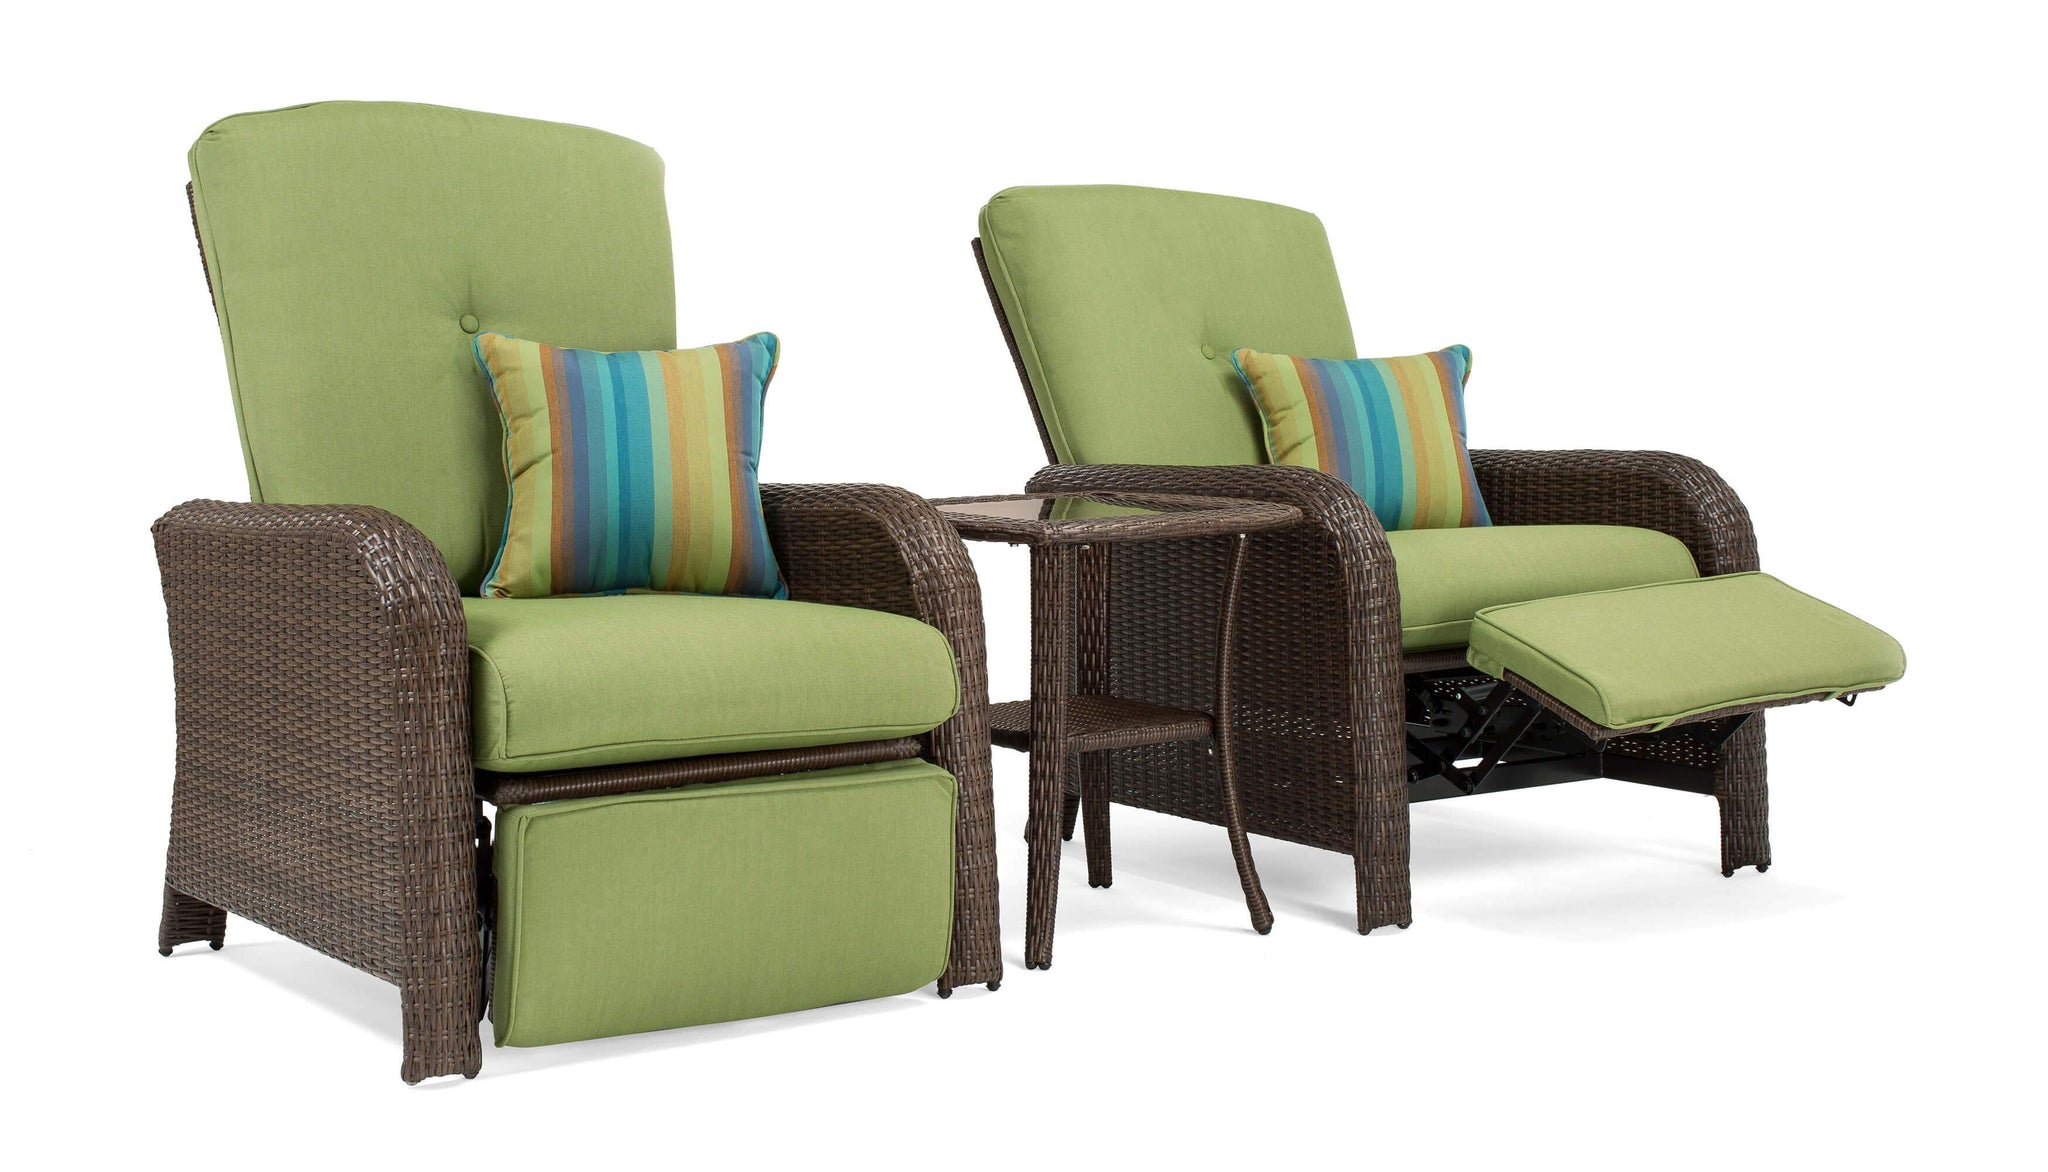 Sawyer Patio Recliner Set Includes 2 Recliners and Side Table (Cilantro Green)  sc 1 st  La-Z-Boy Outdoor & Sawyer Patio Recliner Set: Includes 2 Recliners and Side Table ... islam-shia.org